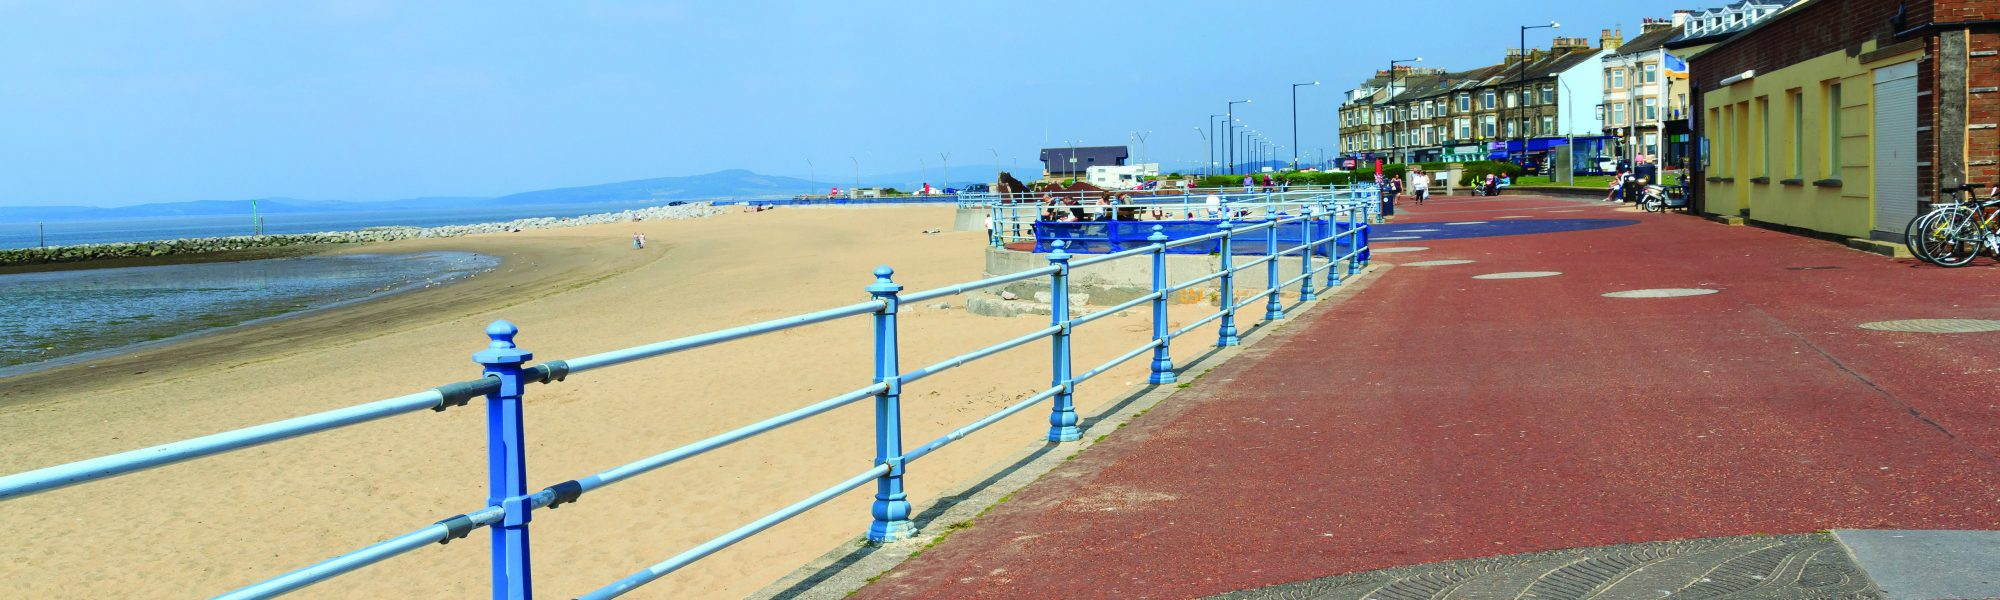 coach holidays to Morecambe